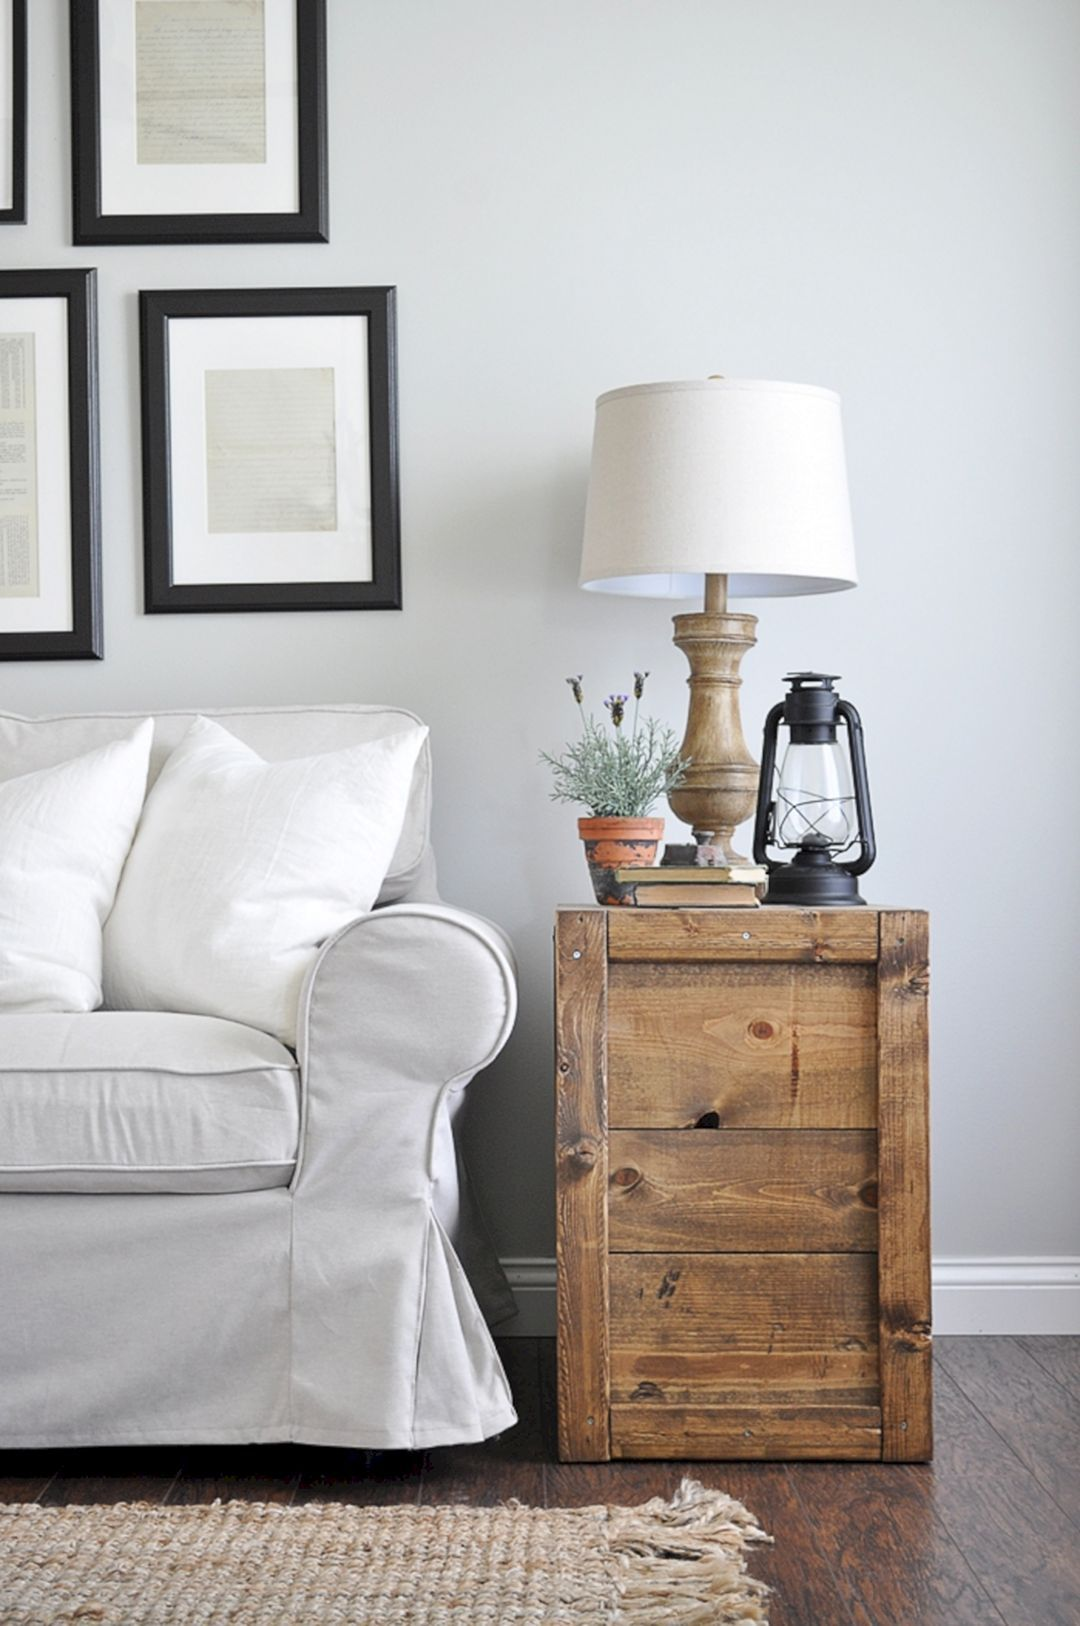 20 Best Diy Side Table Design Ideas For Awesome Living Room Decoration Decor Gardening Ideas Side Table Decor Living Room Living Room Side Table Table Decor Living Room #side #table #decor #ideas #living #room